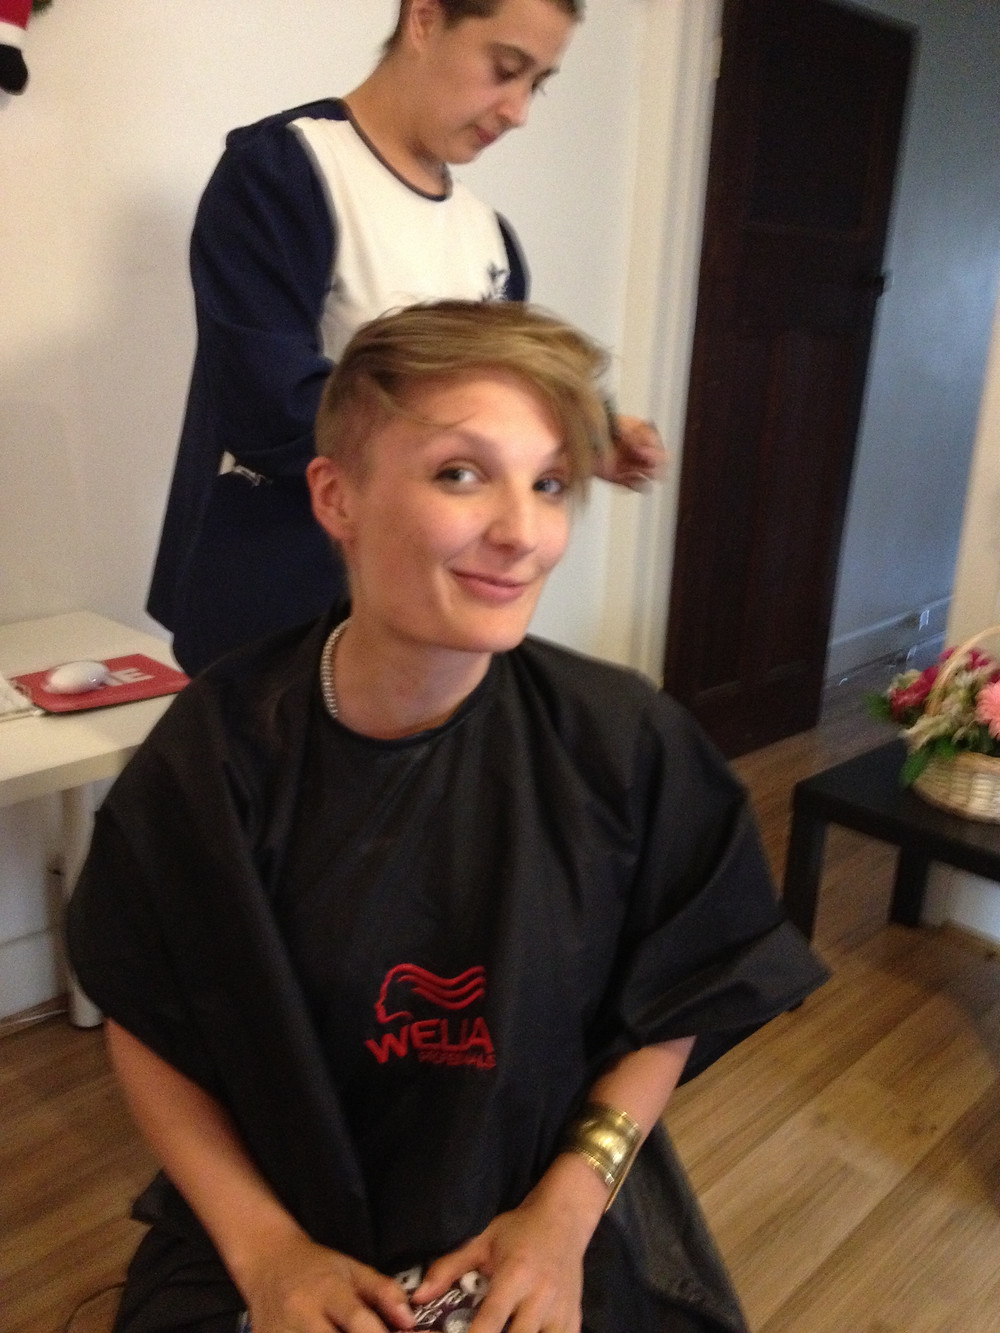 Emily Somers trying out the double undercut during her first big shave.